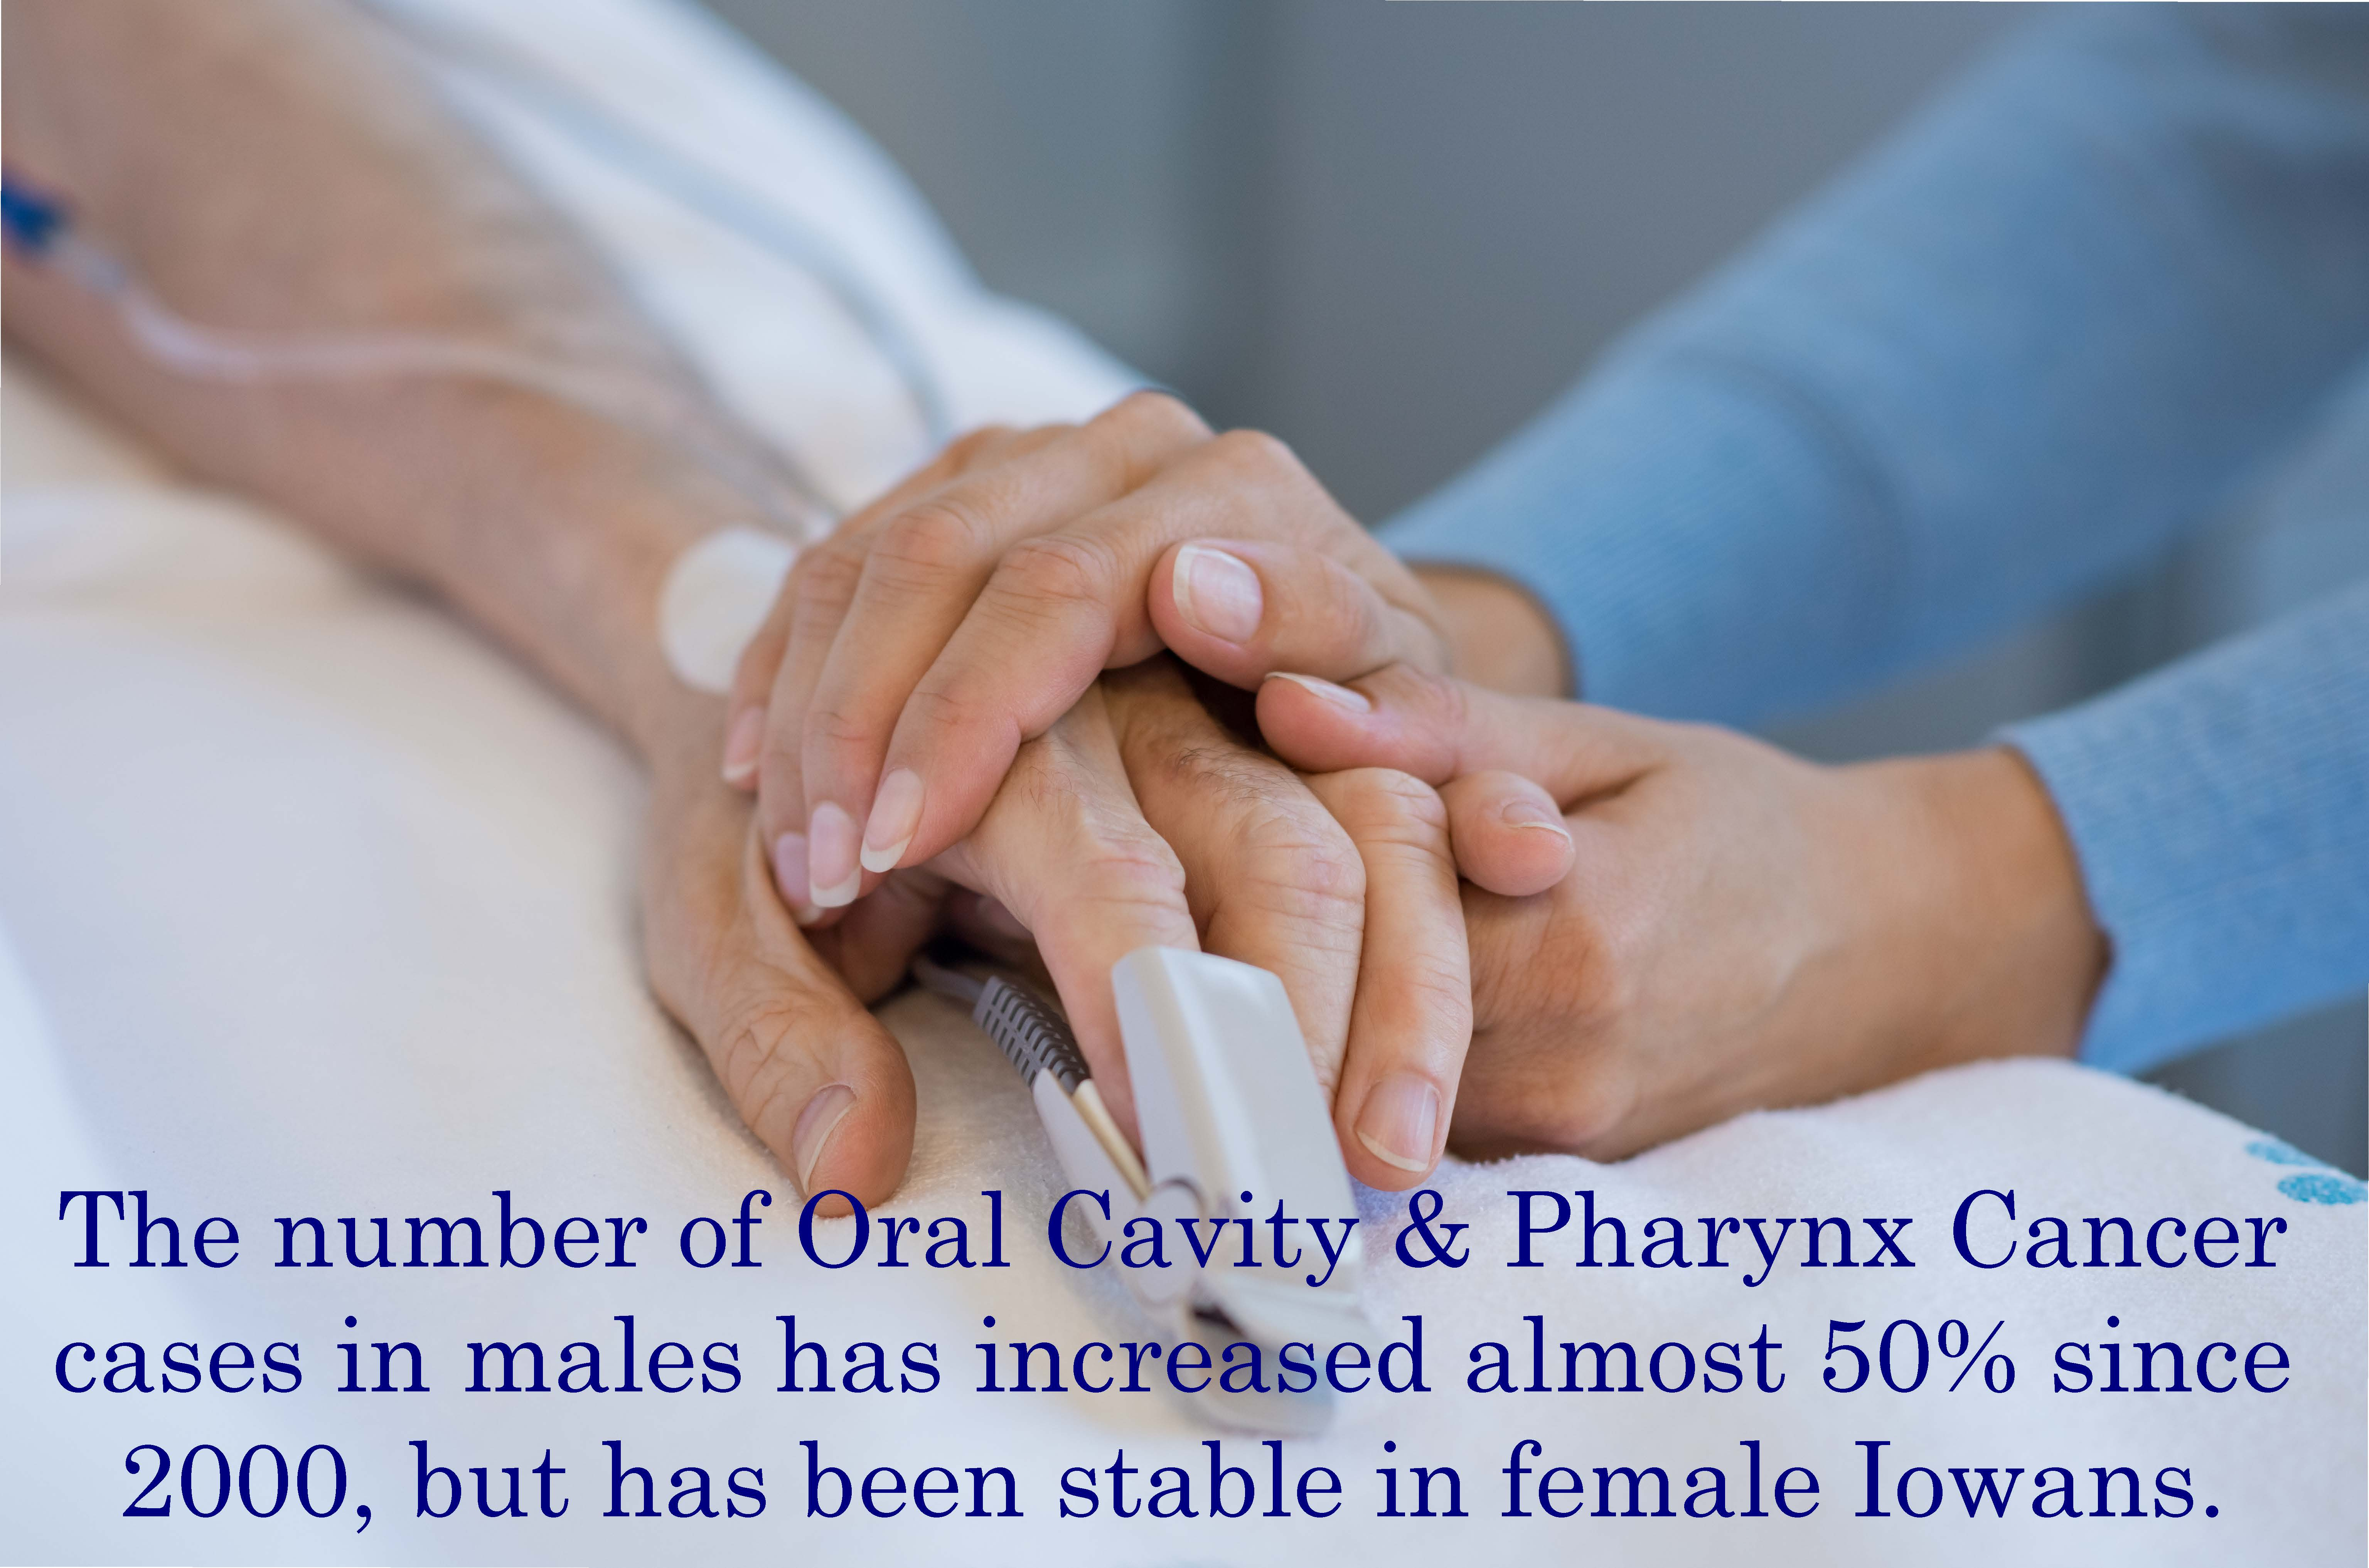 Oral Cavity and Pharynx Cancer